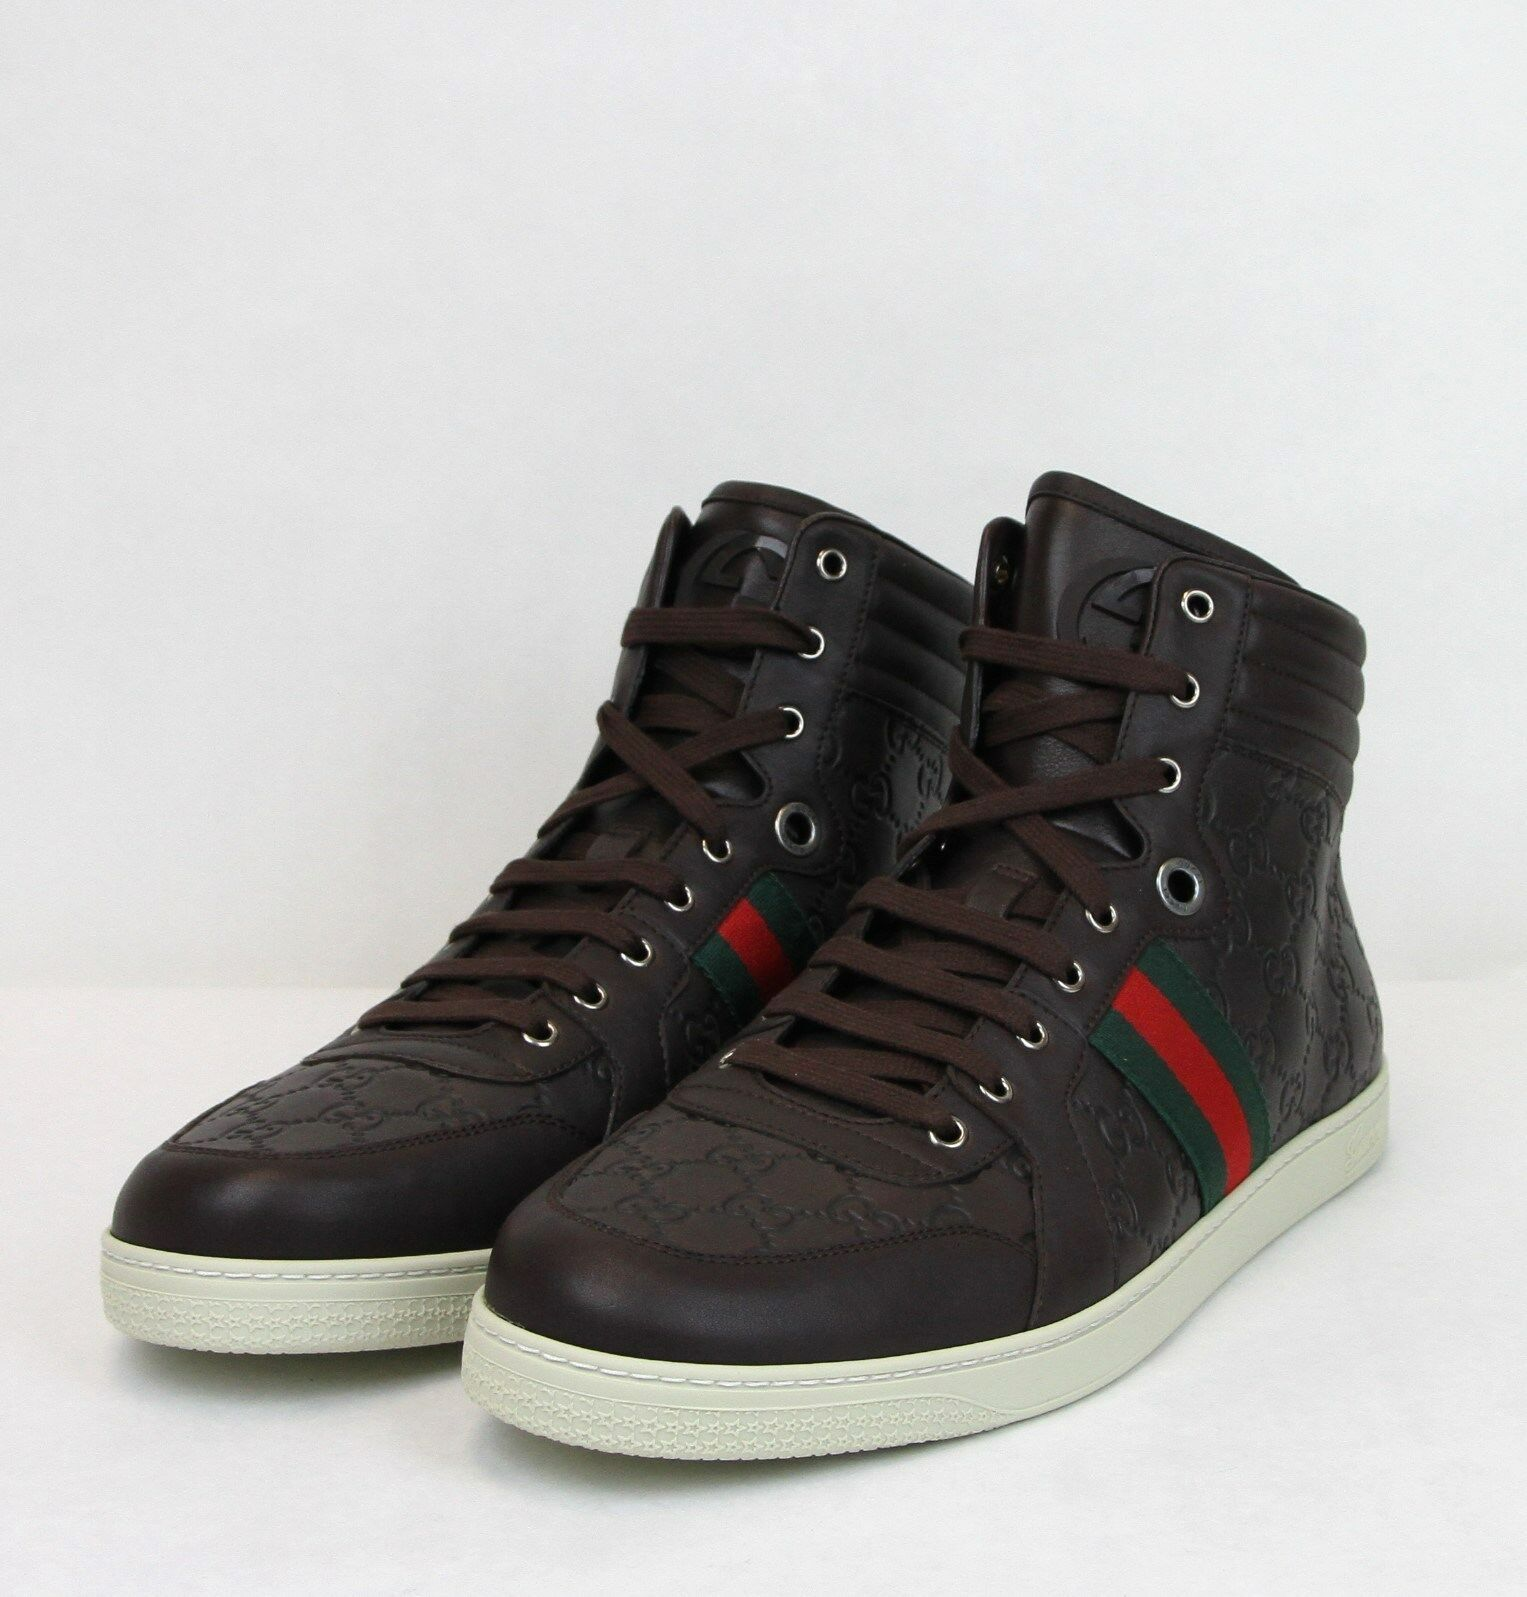 gucci mens shoes price list